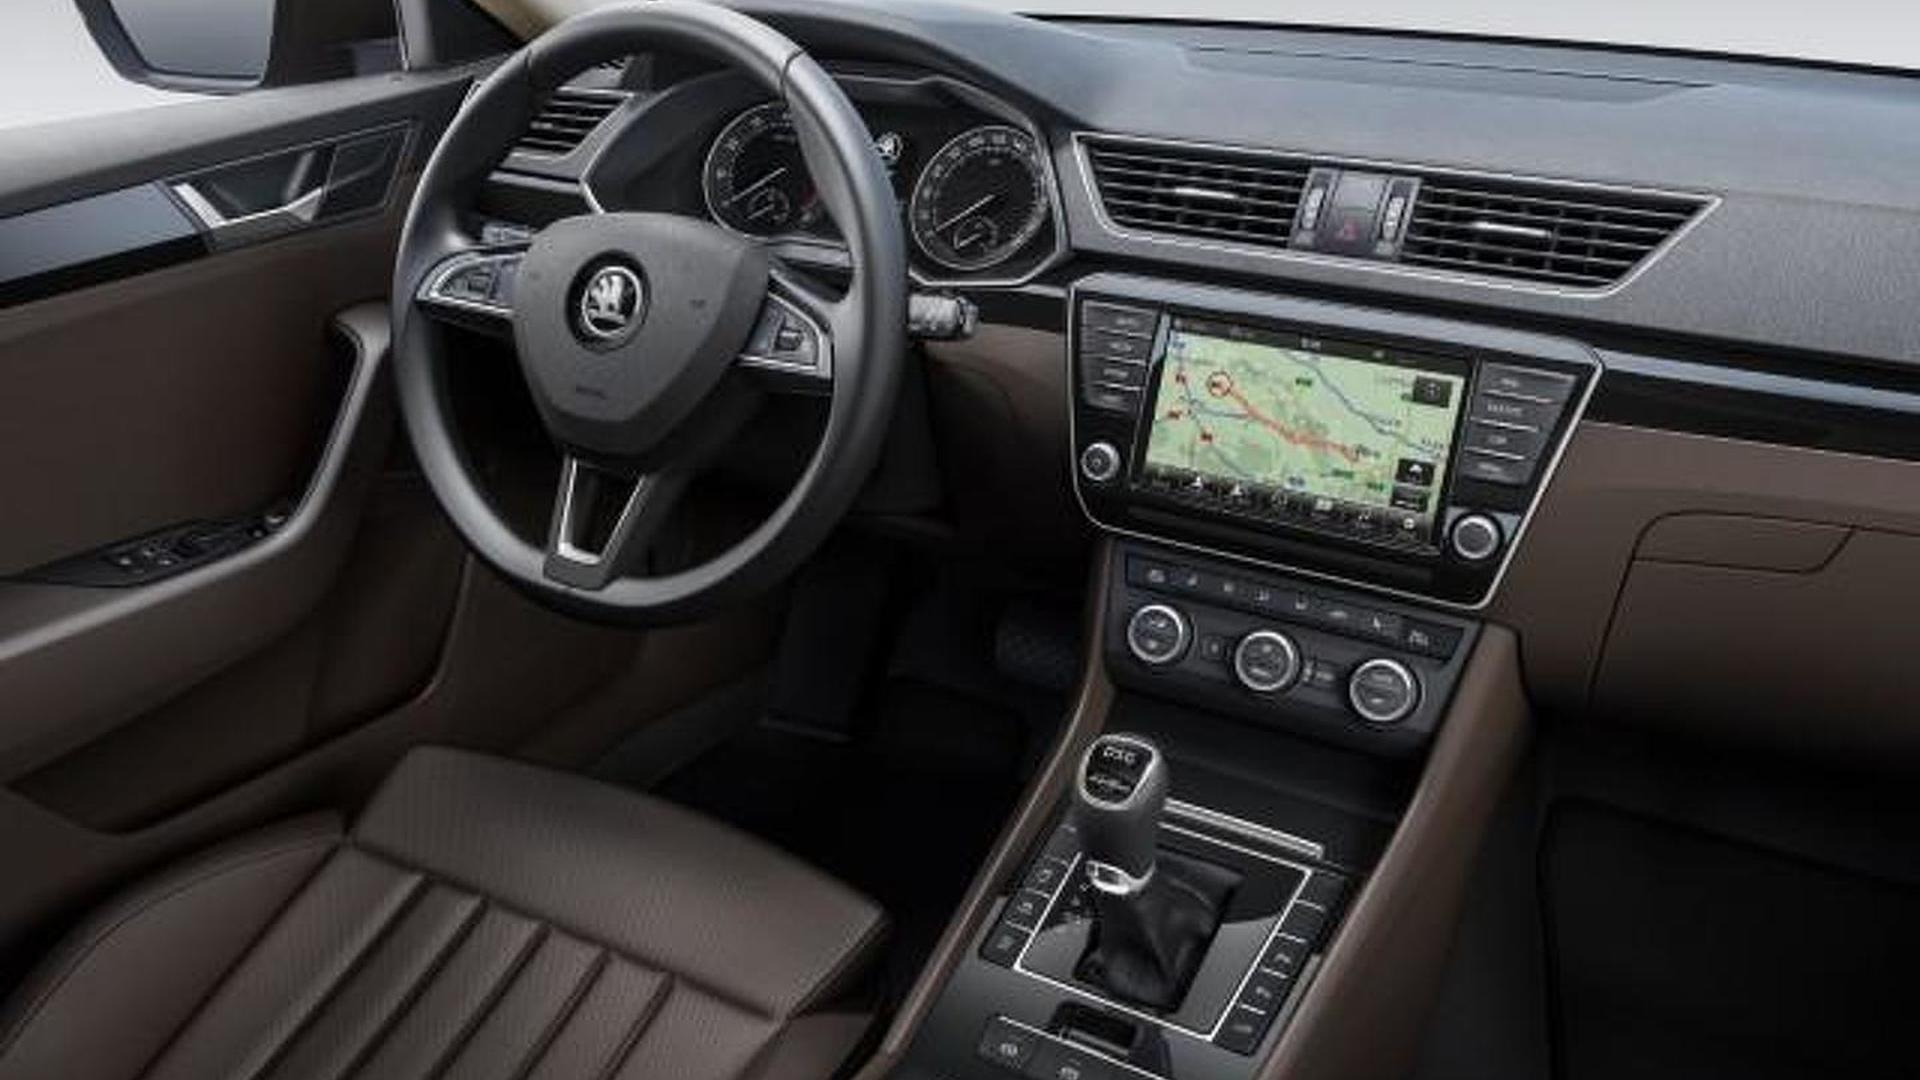 2015 Skoda Superb interior cabin revealed